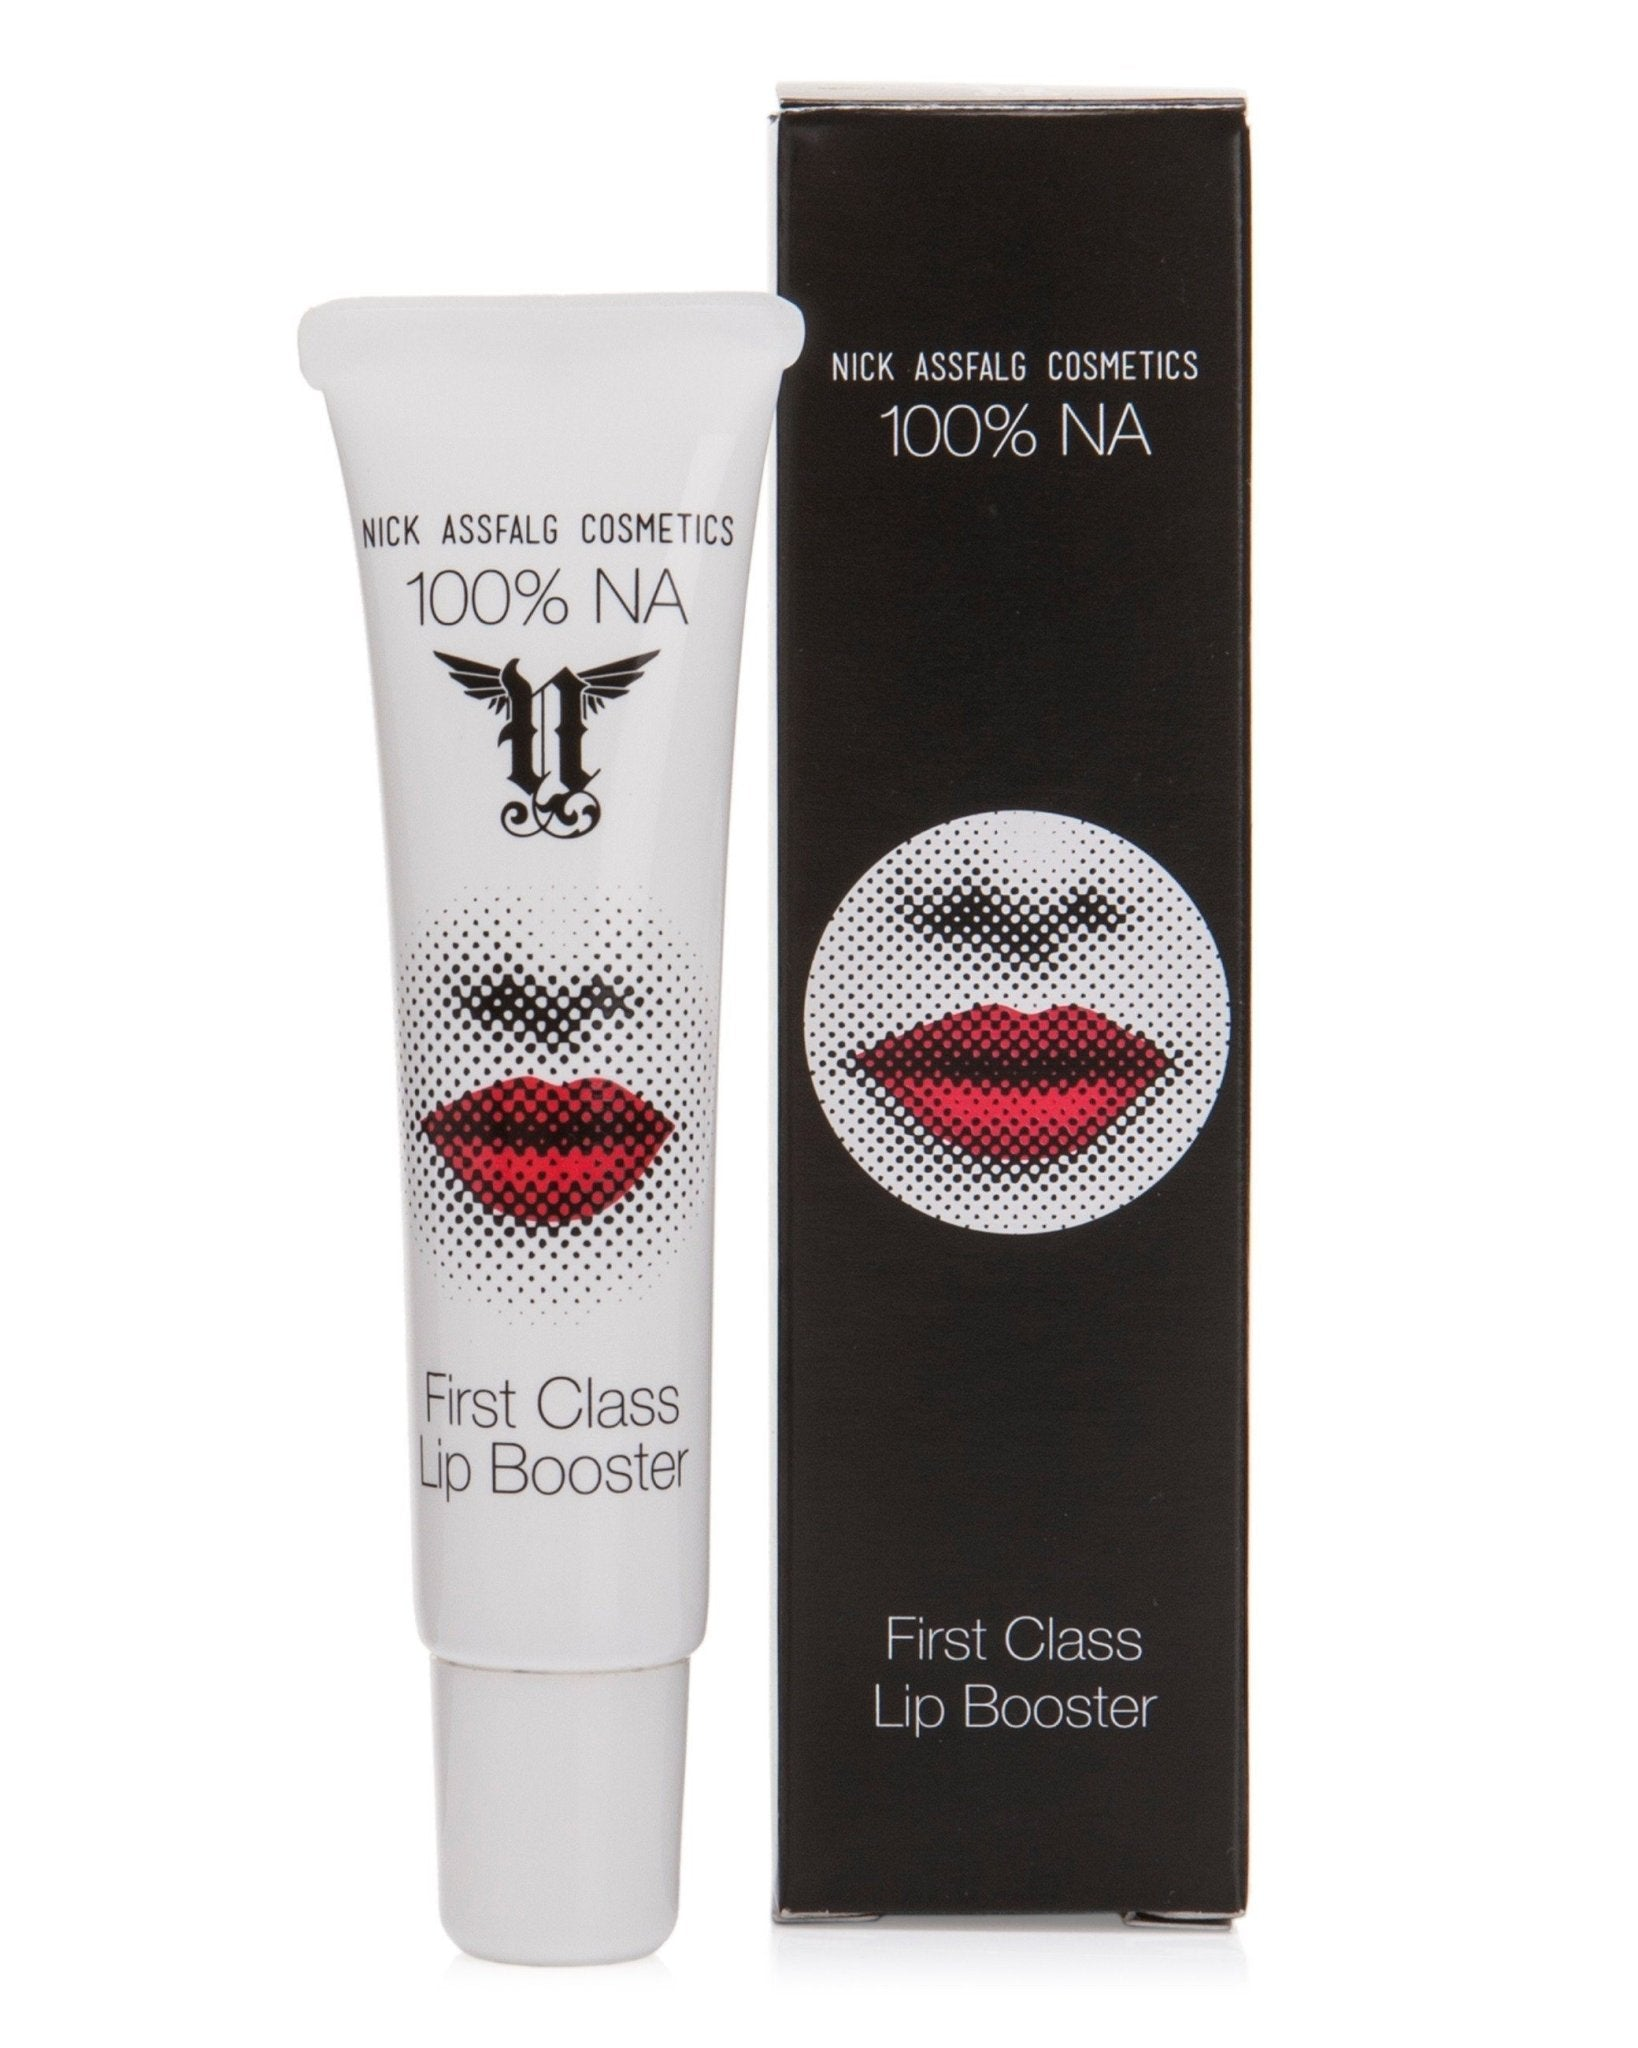 NA First Class Lip Booster 15ml - NICK ASSFALG PRO SKINCARE & MAKEUP Mascara Anti Aging Hautcreme Profi Kosmetik